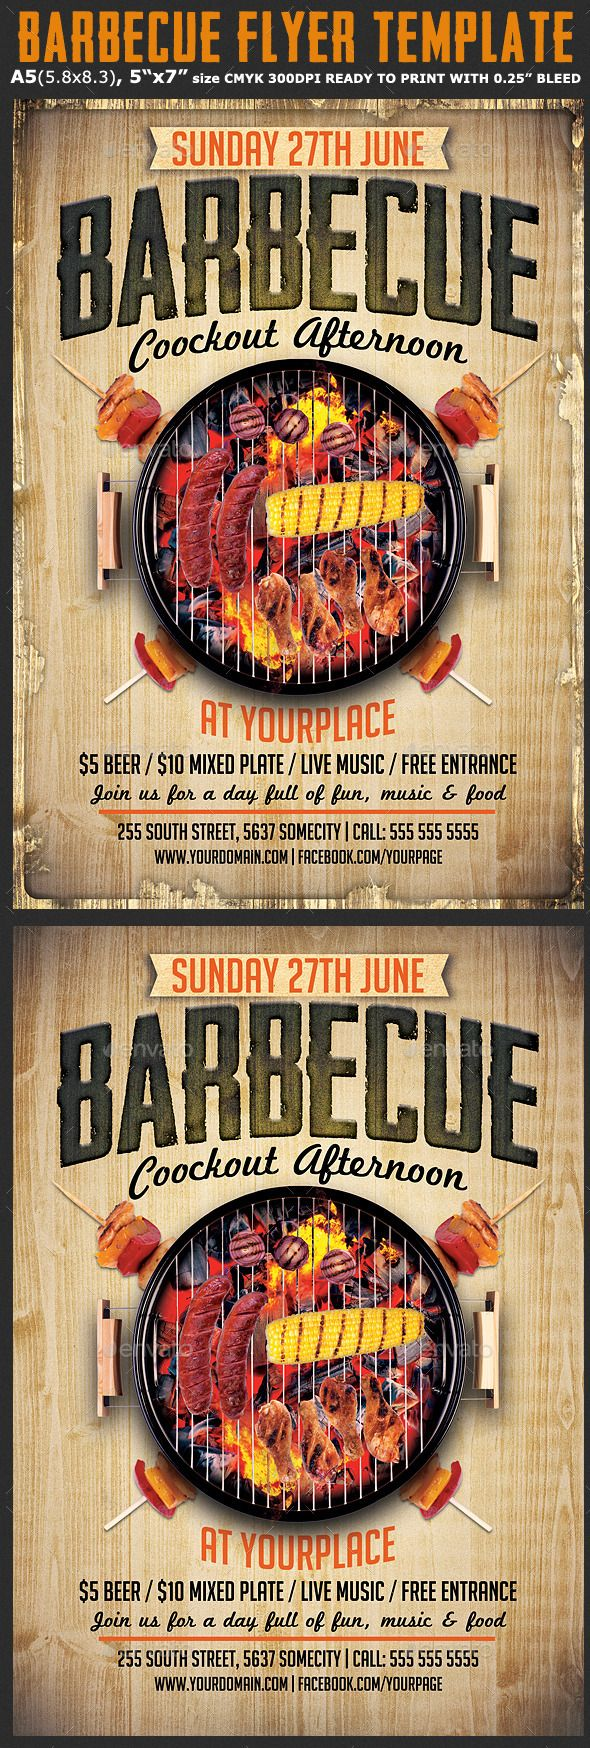 barbecue flyer template flyer template barbecue and flyers buy barbecue flyer template by hotpin on graphicriver bbq barbecue flyer template is a modern psd flyer that will give the perfect promotion for your